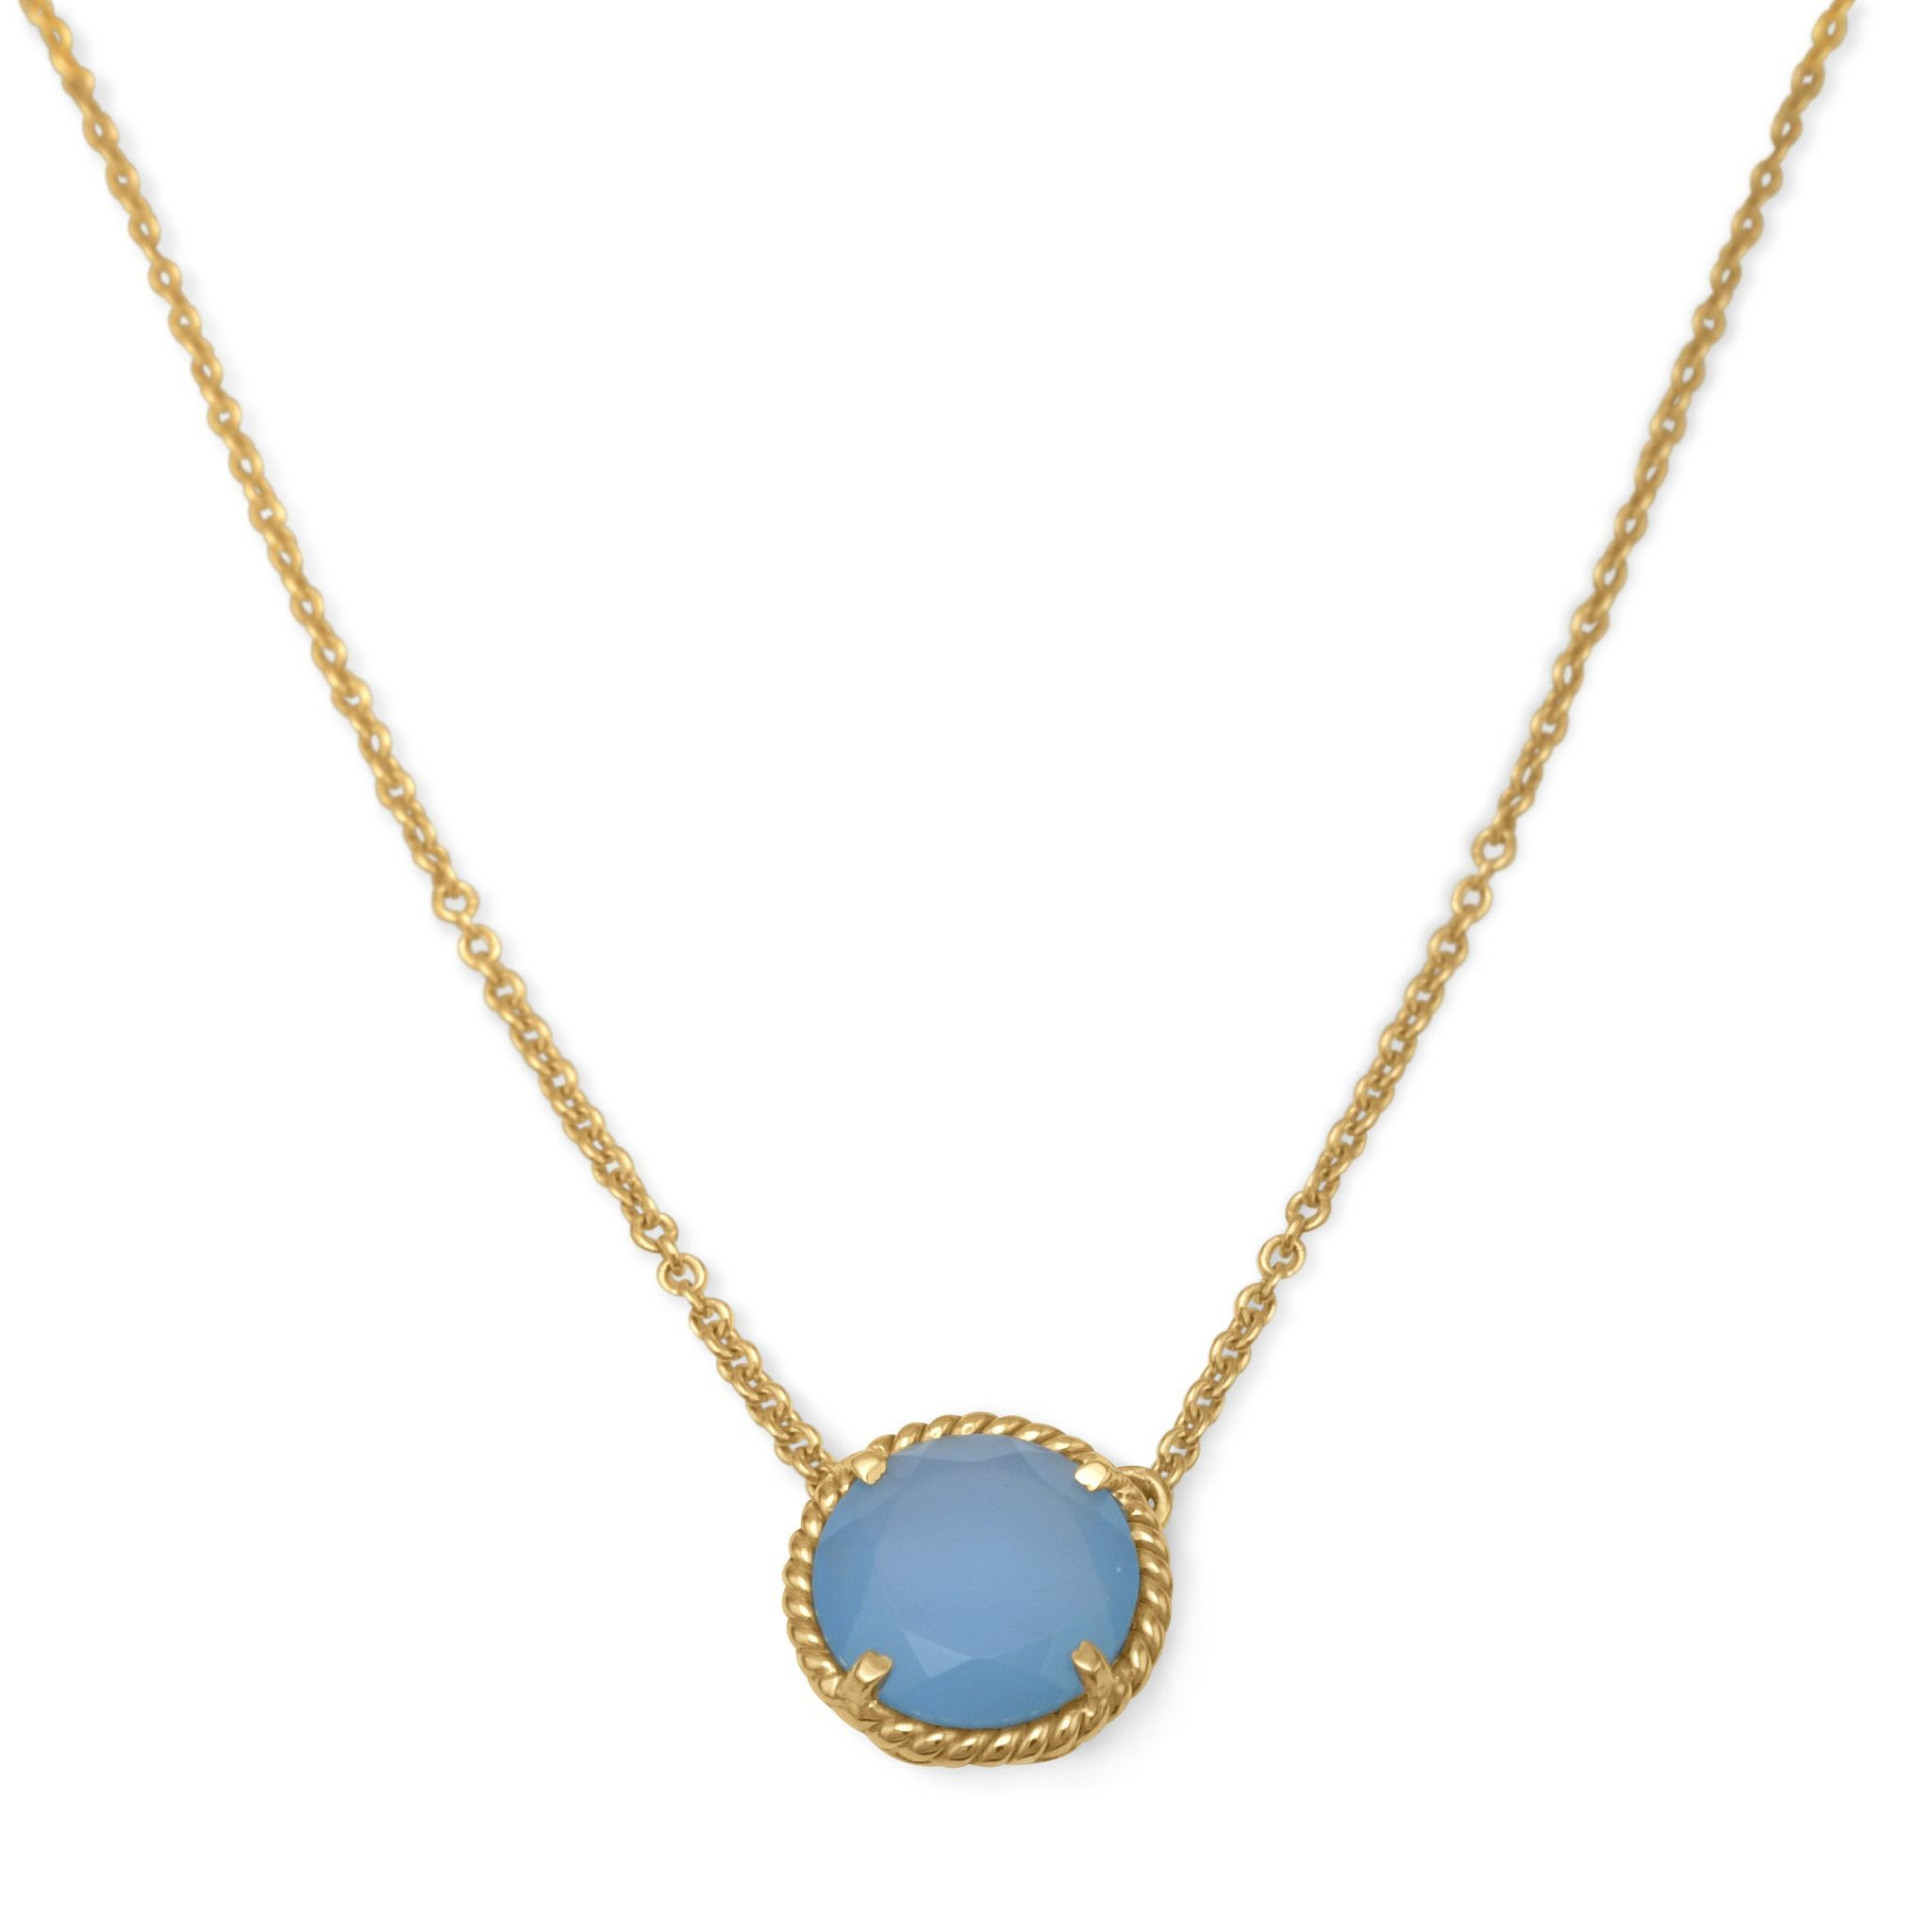 Adjustable karat gold plated brass blue chalcedony necklace